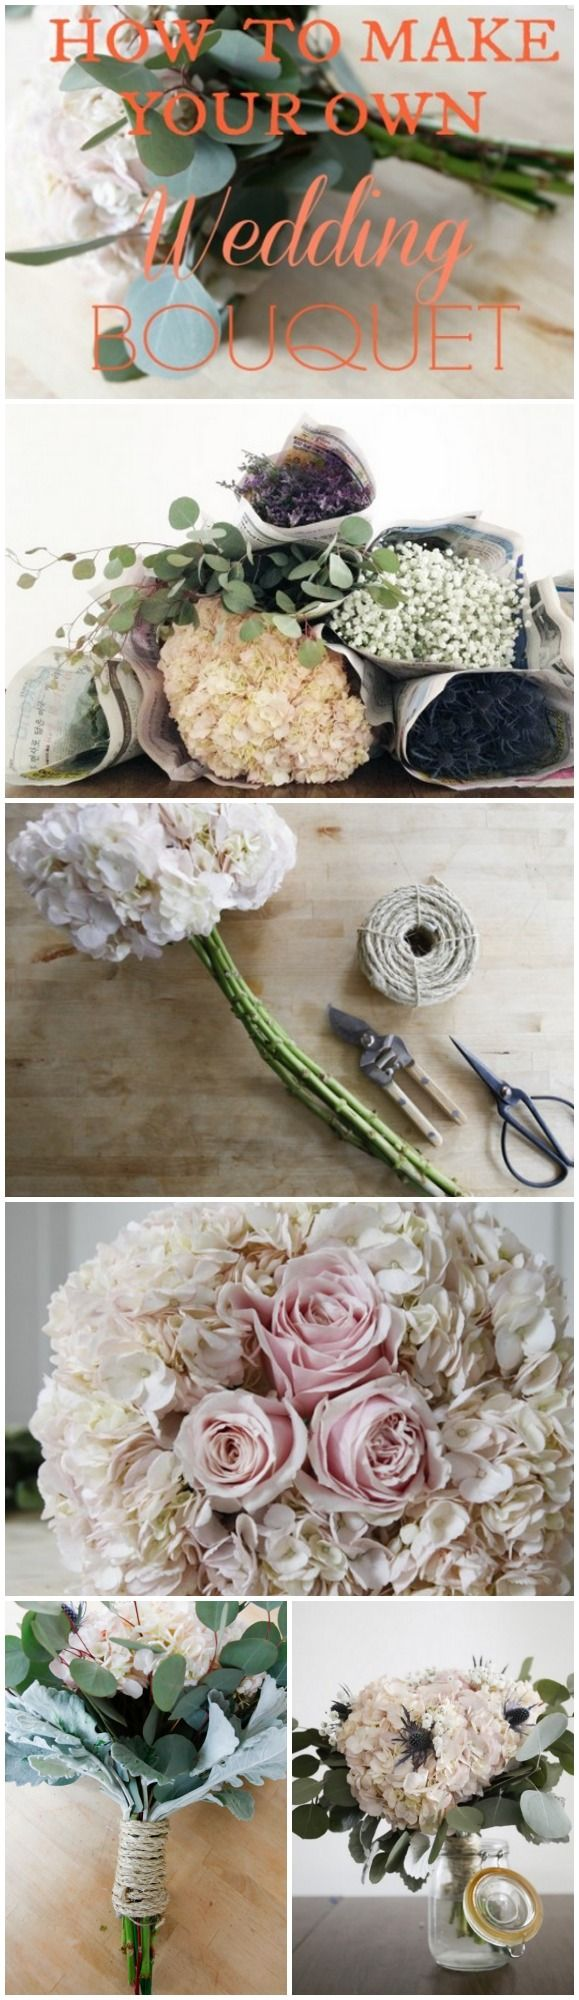 Easy Step By Step Directions How To Make Your Own Bouquet.  FYI I made all the bouquets for our daughter's wedding.  It wasn't difficult, and I saved a ton of money.